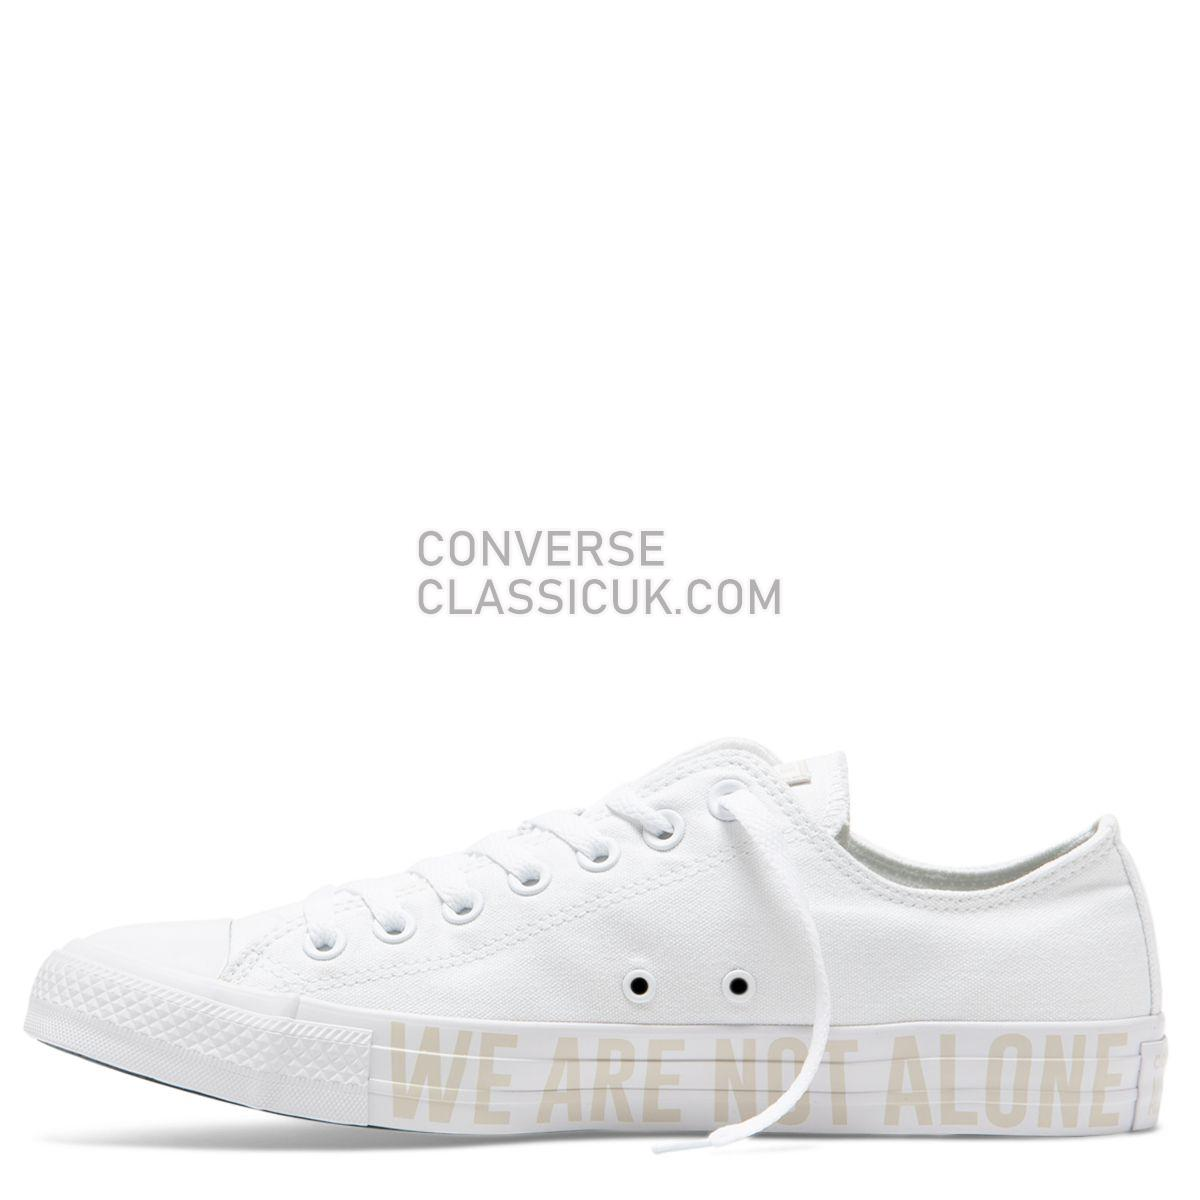 Converse Chuck Taylor All Star We Are Not Alone Low Top White Mens Womens Unisex 165384 White/Pale Putty/White Shoes